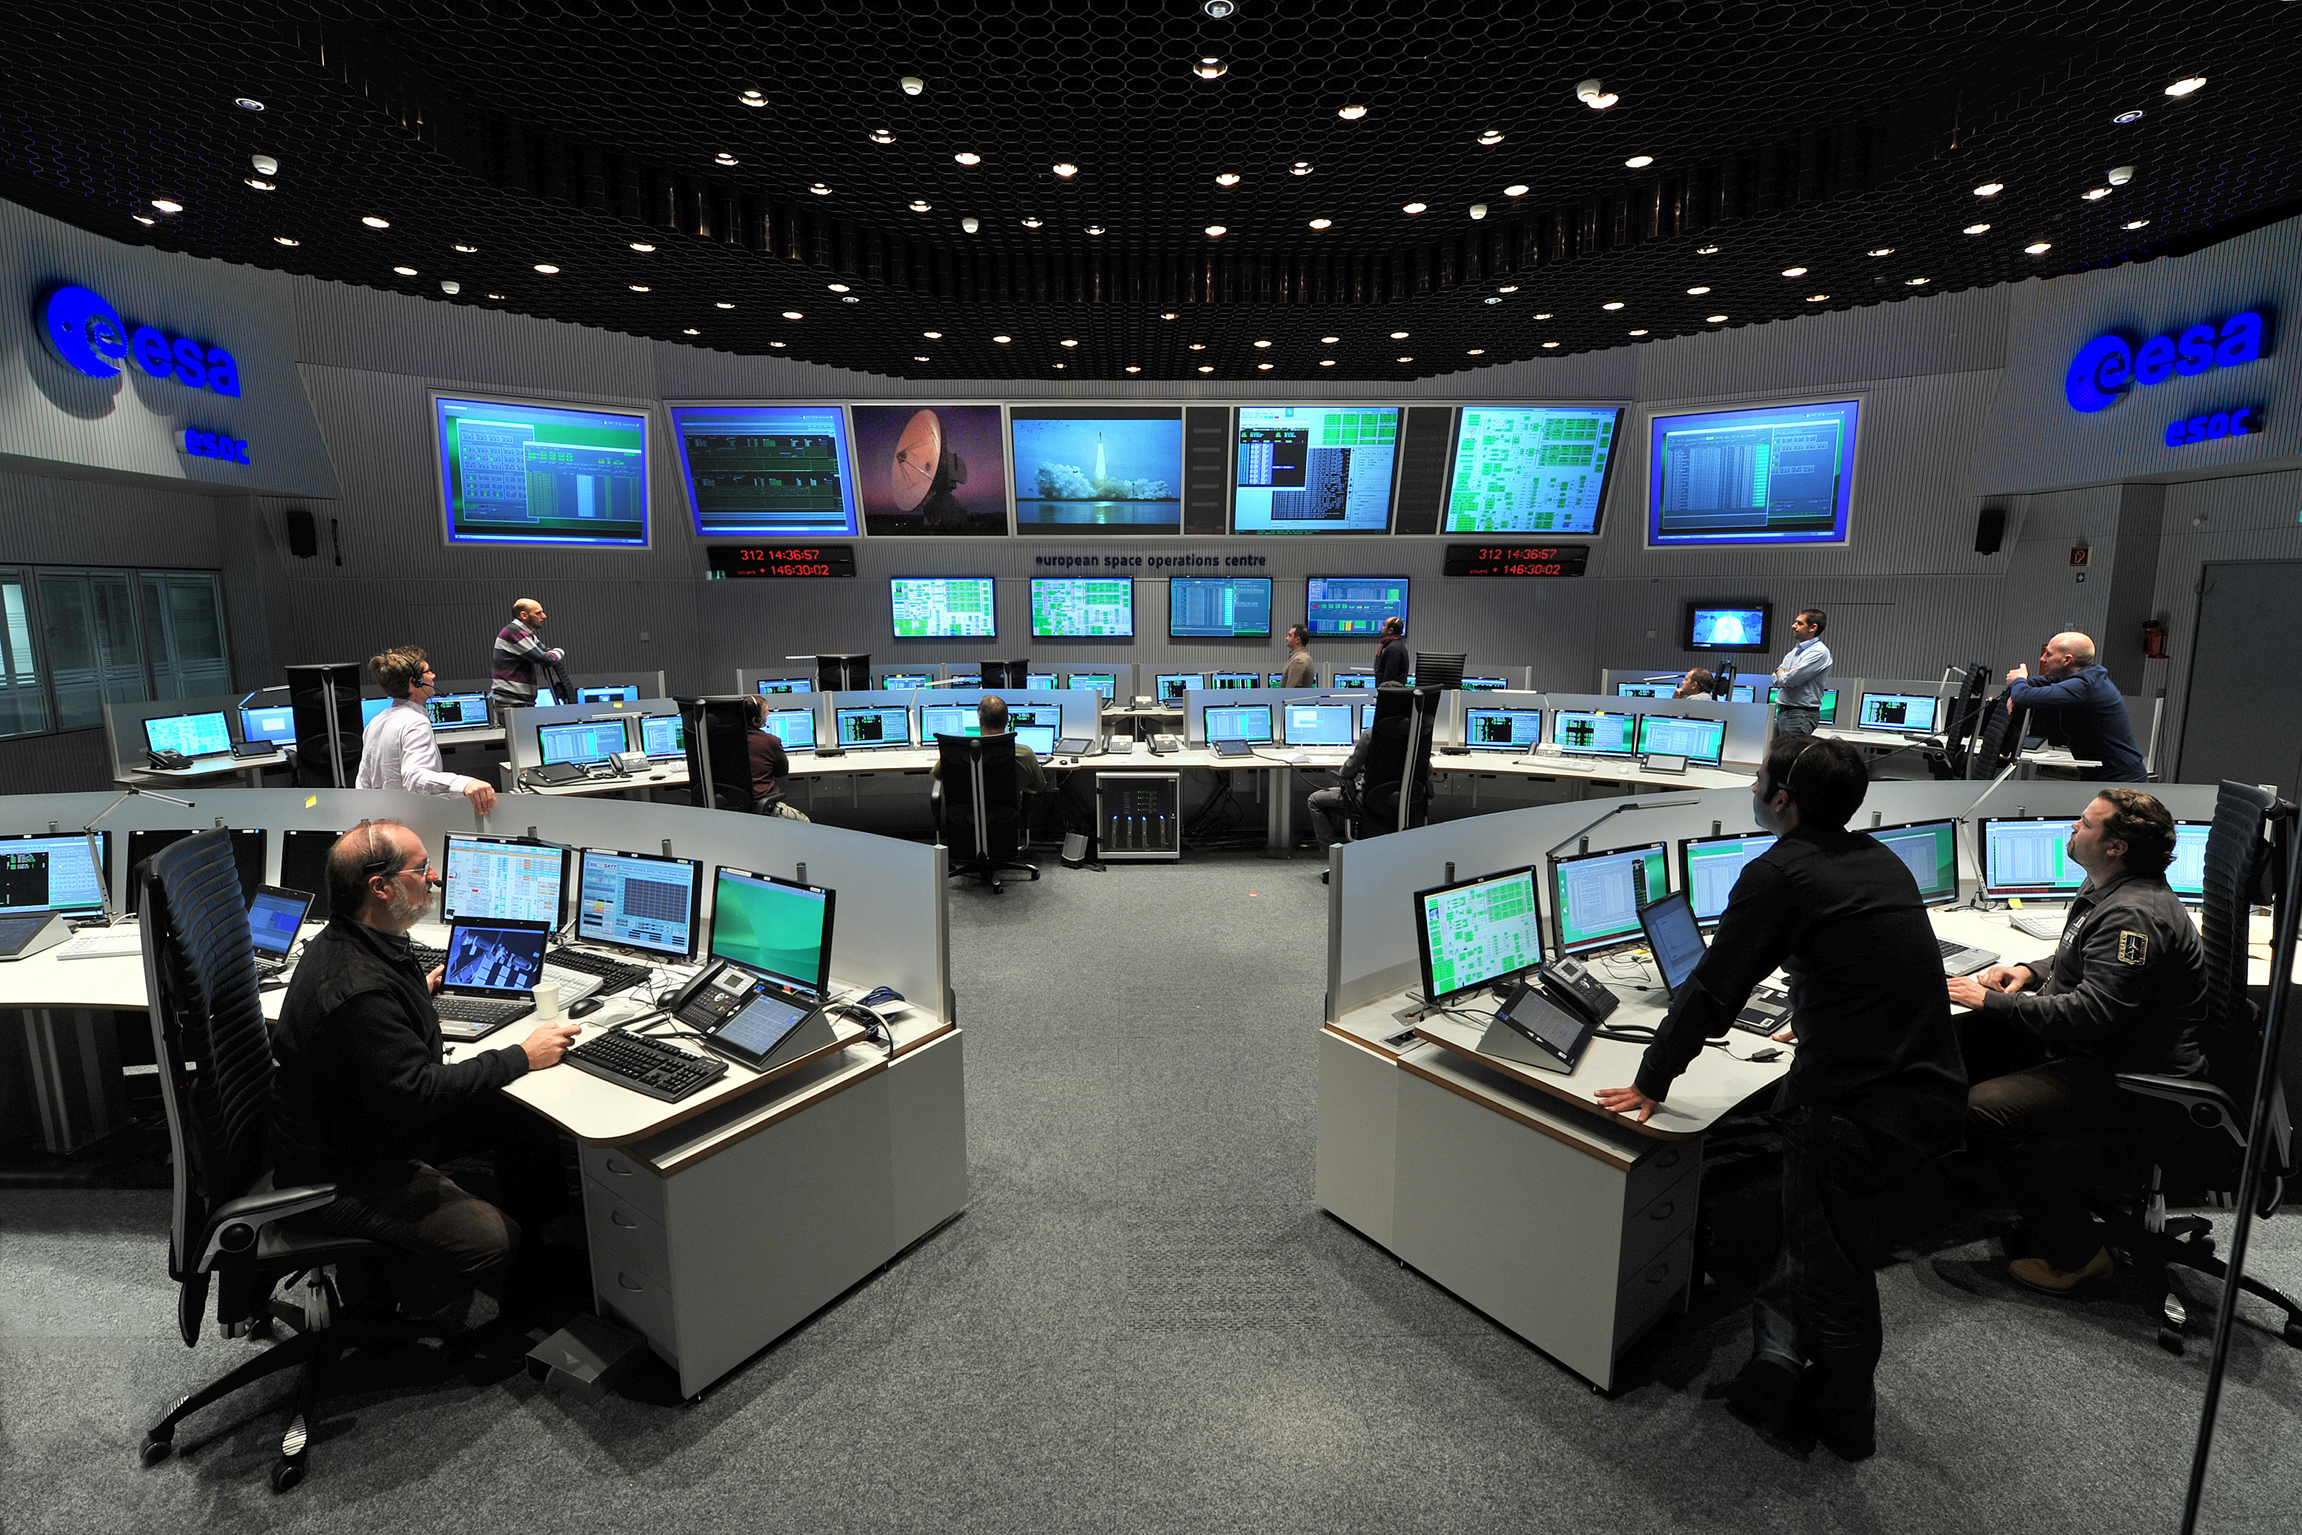 Space in Images - 2012 - 05 - ESA control room